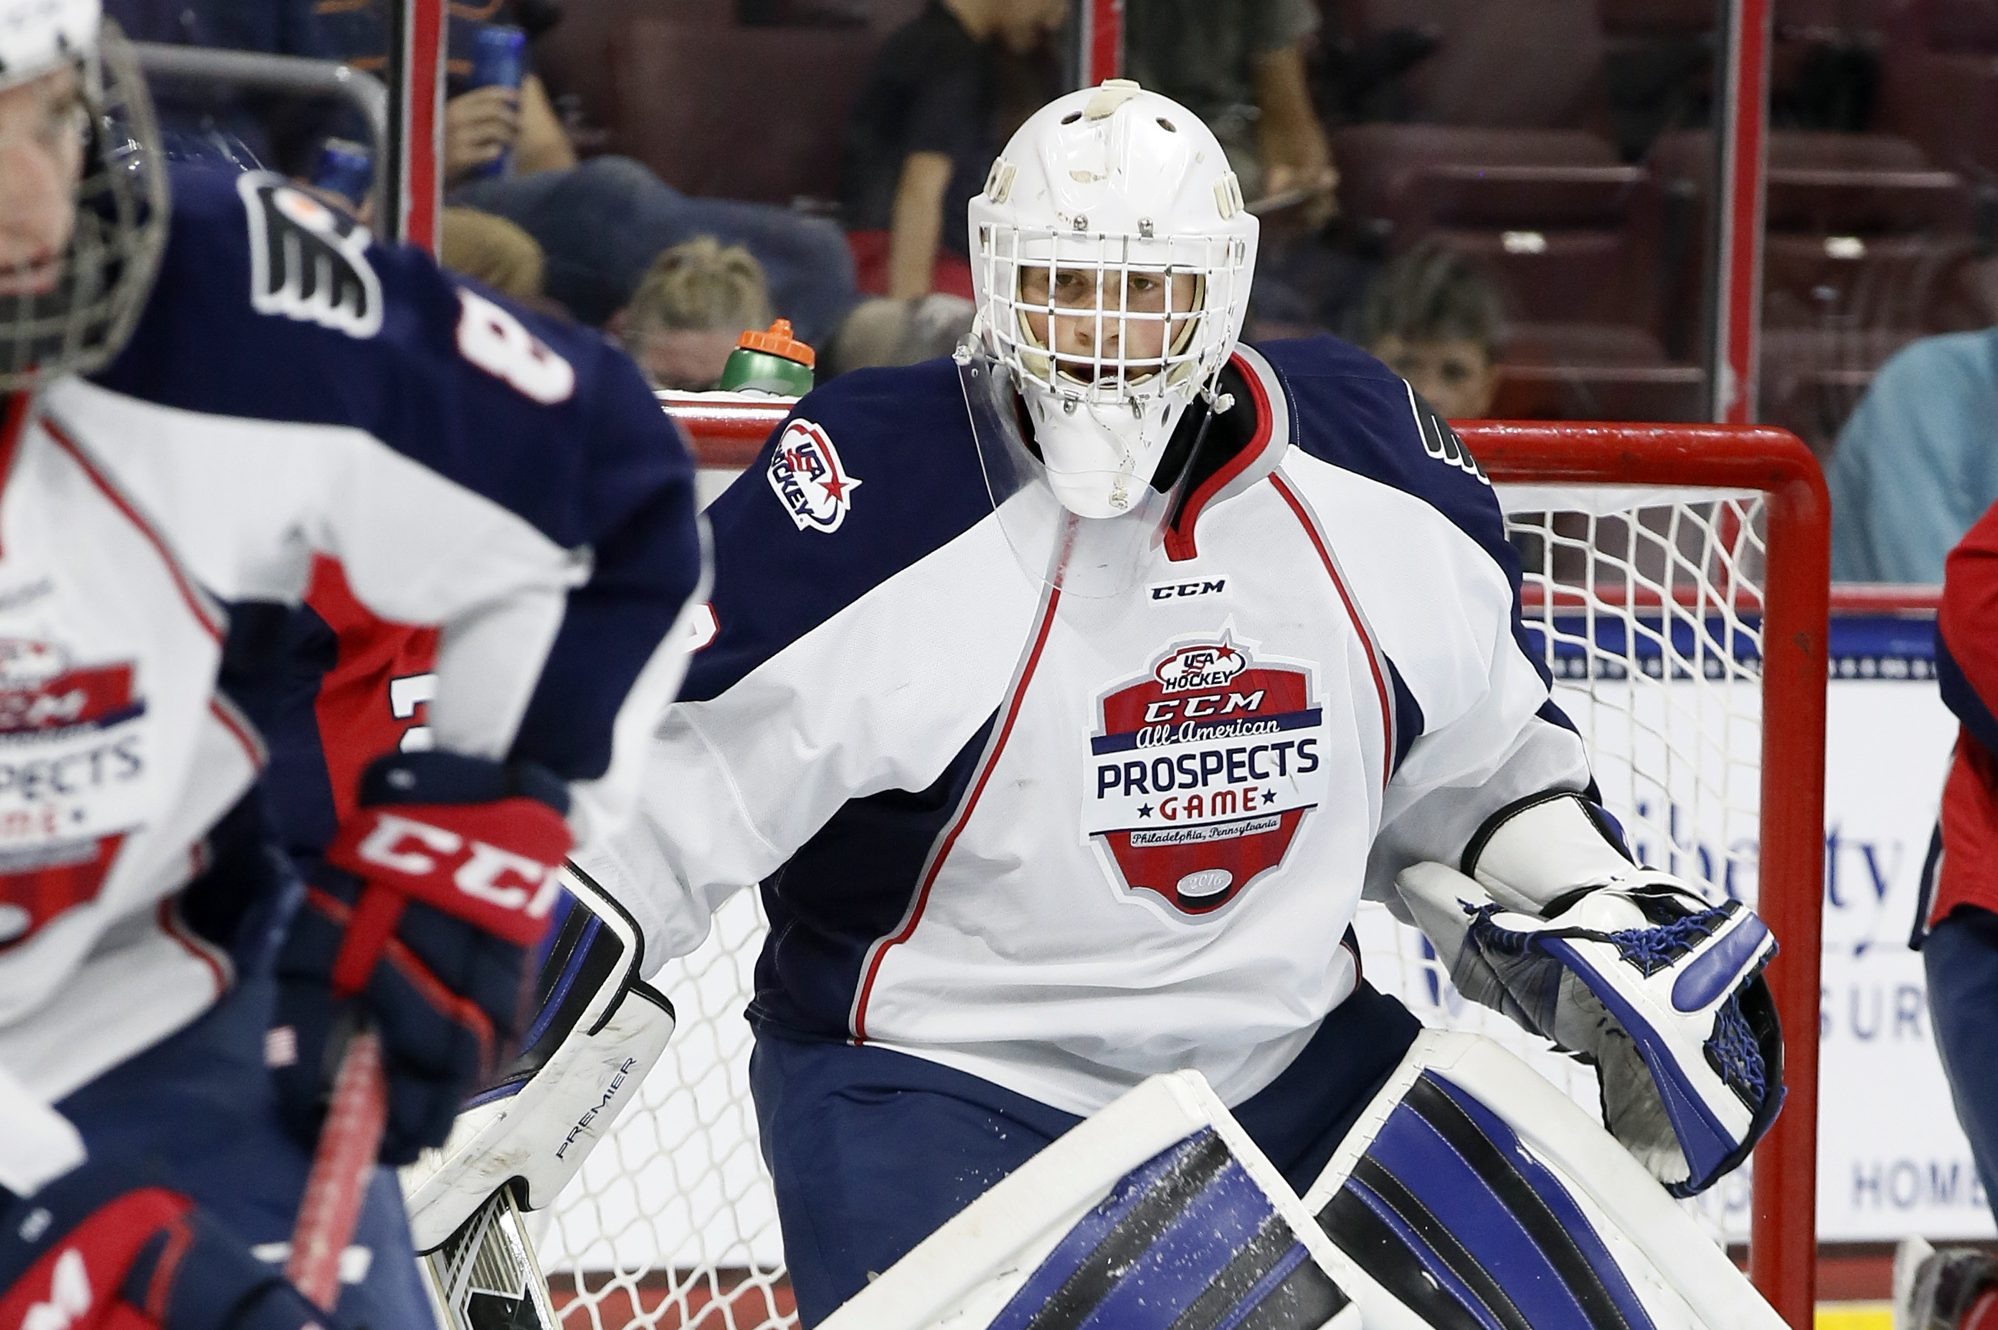 Team LeClair goalie Cayden Primeau watches teammates clear the puck during the 2016 CCM/USA Hockey All-American Prospects Game at the Wells Fargo Center in Phila., Pa. on Sept. 22, 2016. ELIZABETH ROBERTSON / Staff Photographer